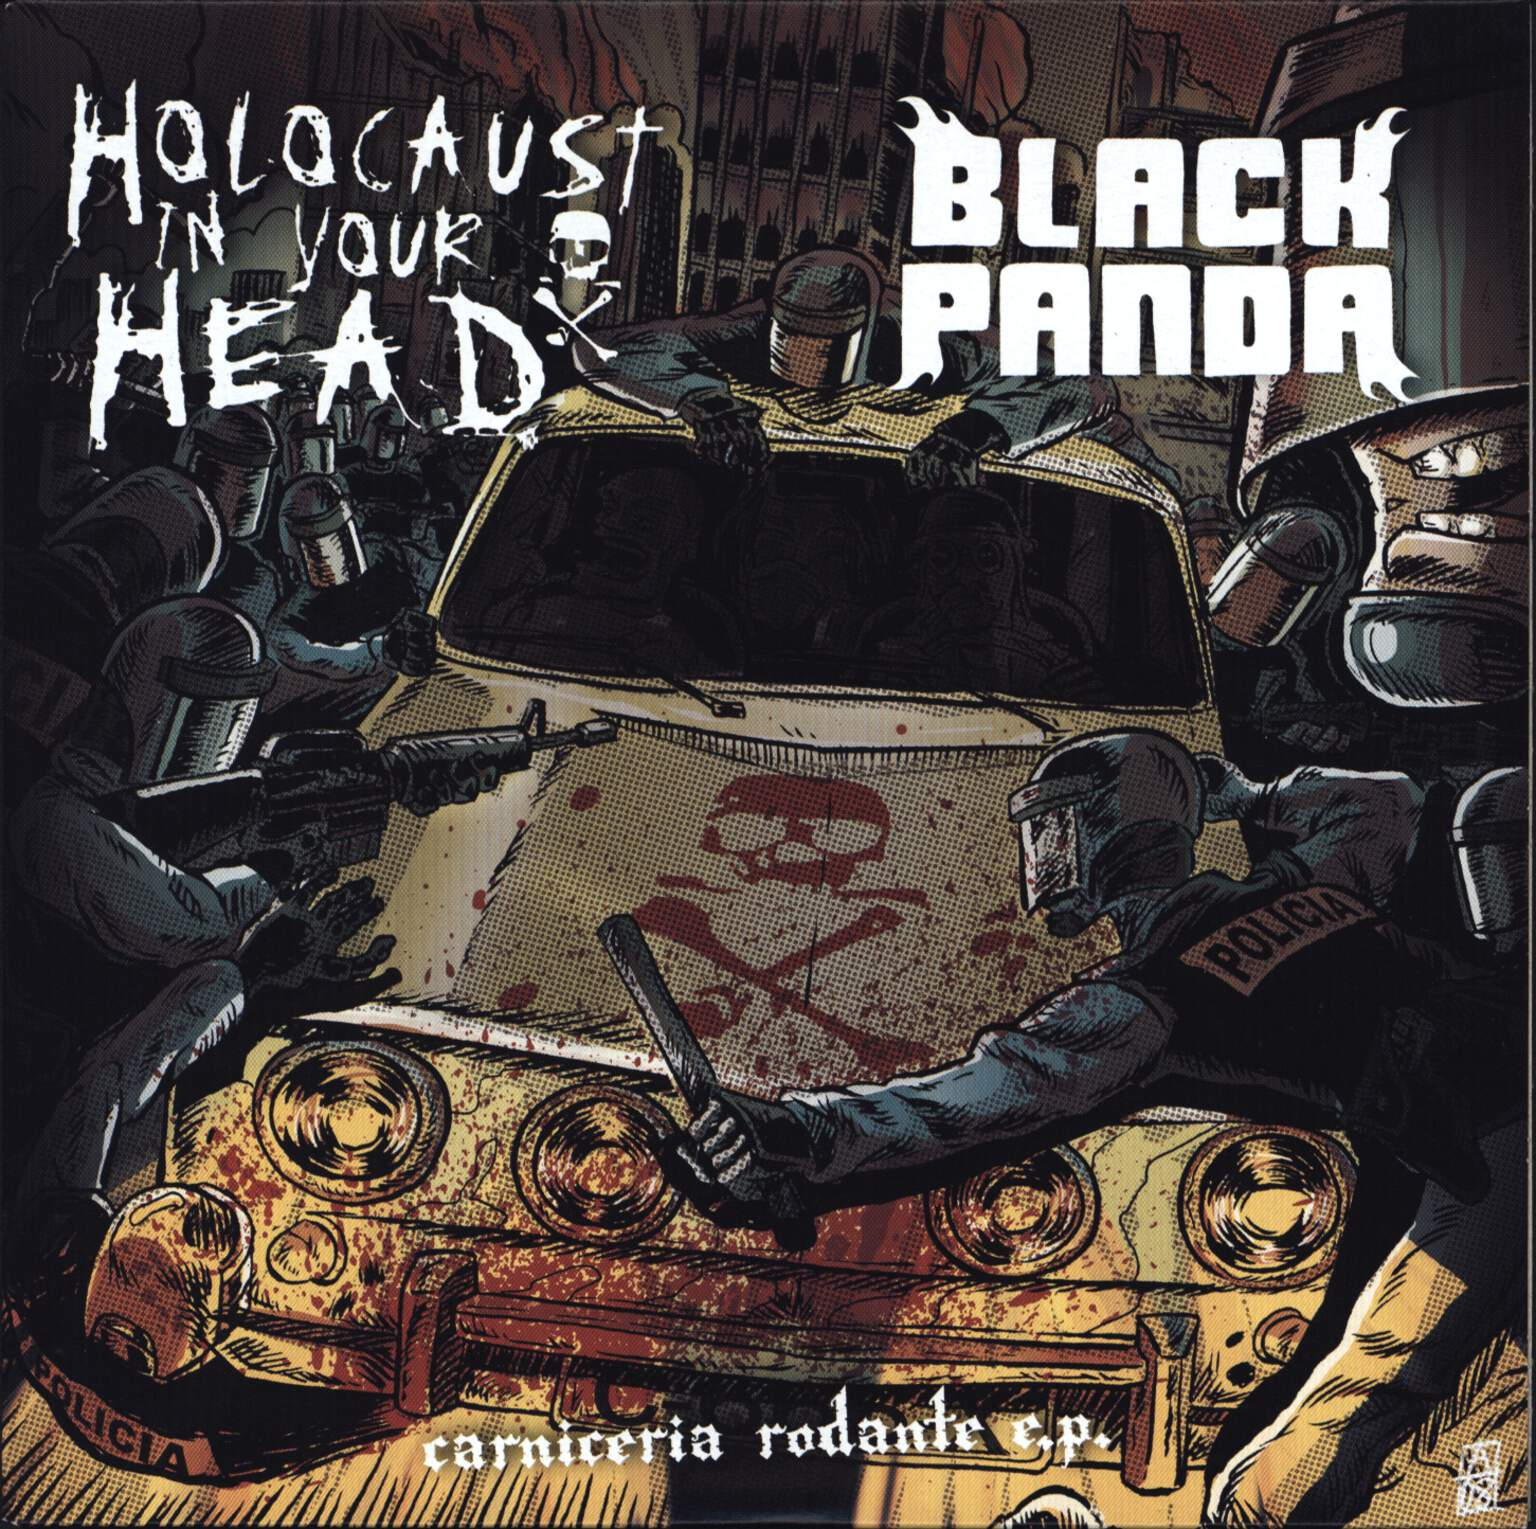 "Holocaust In Your Head: Carniceria Rodante E.P., 7"" Single (Vinyl)"